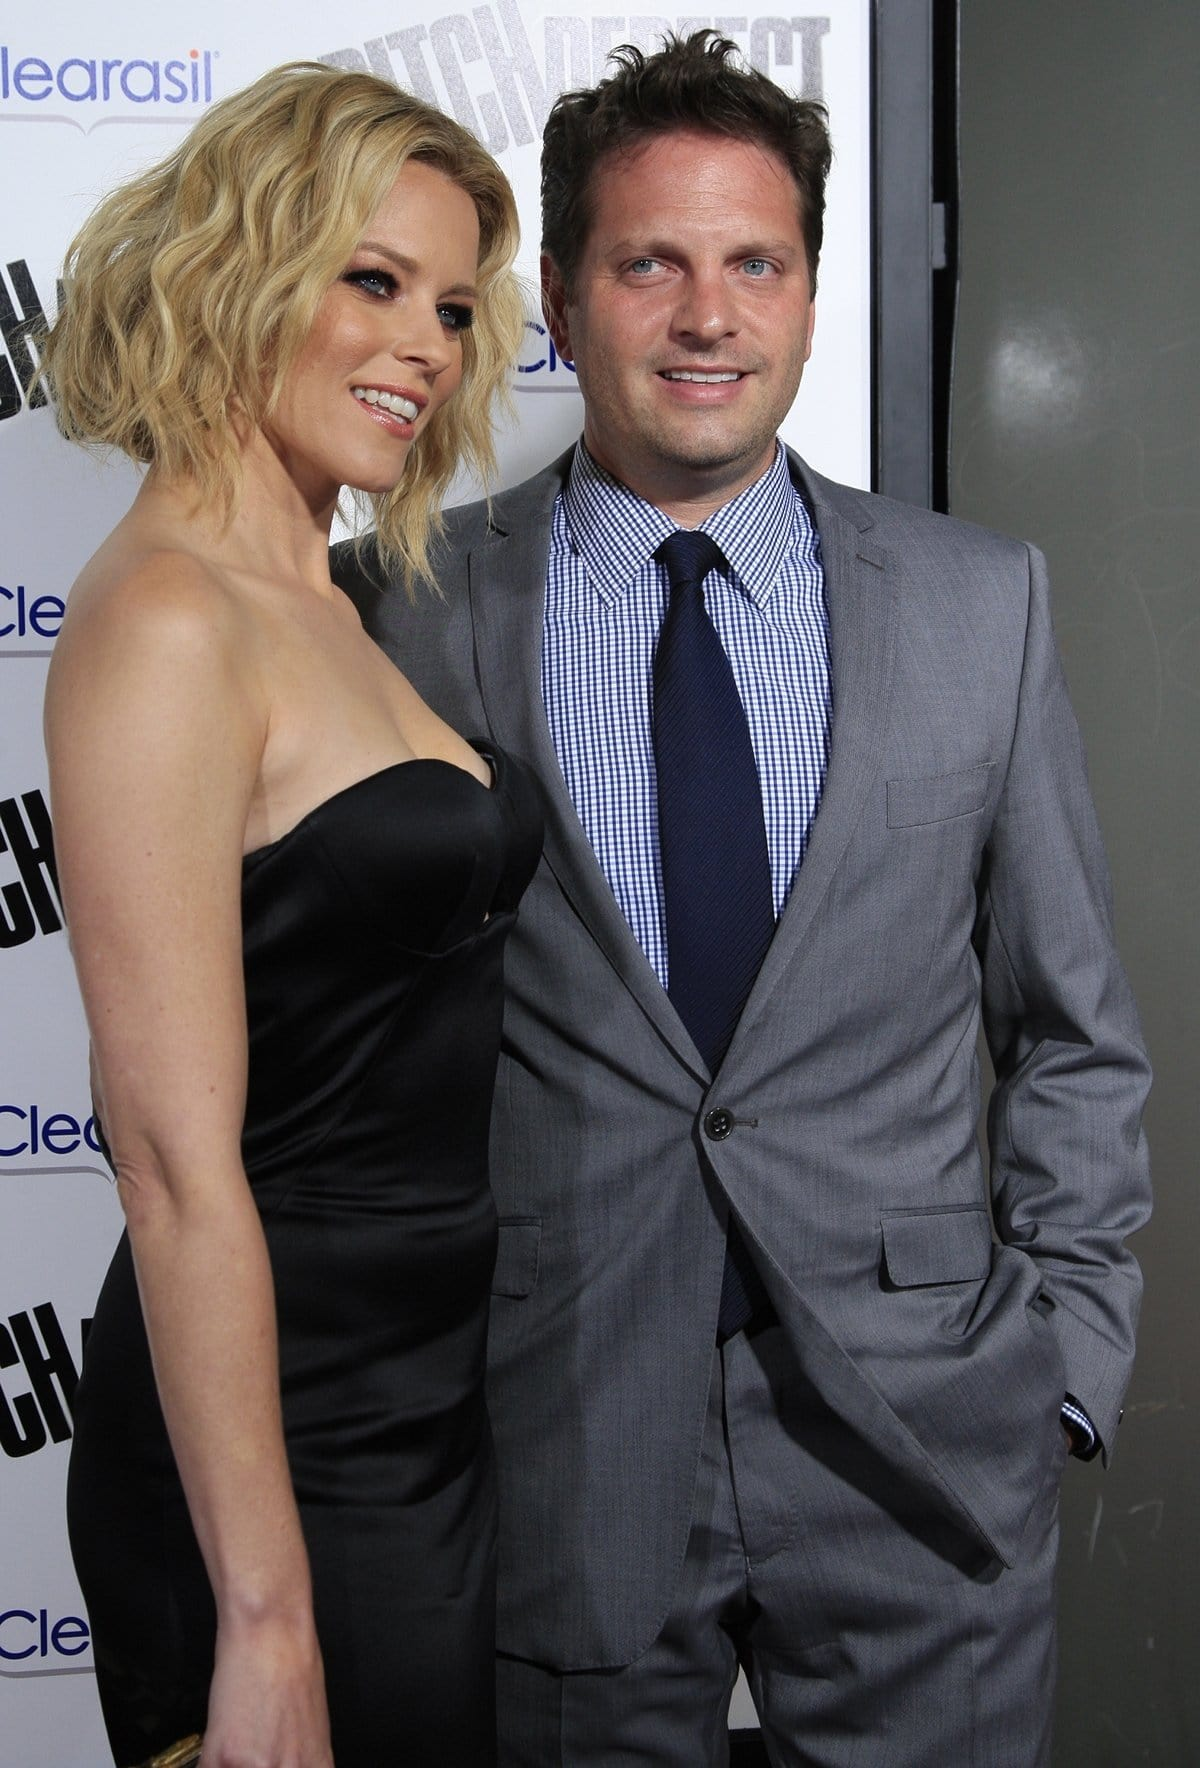 Elizabeth Banks and her husband Max Handelman arrive at the Los Angeles premiere of 'Pitch Perfect'